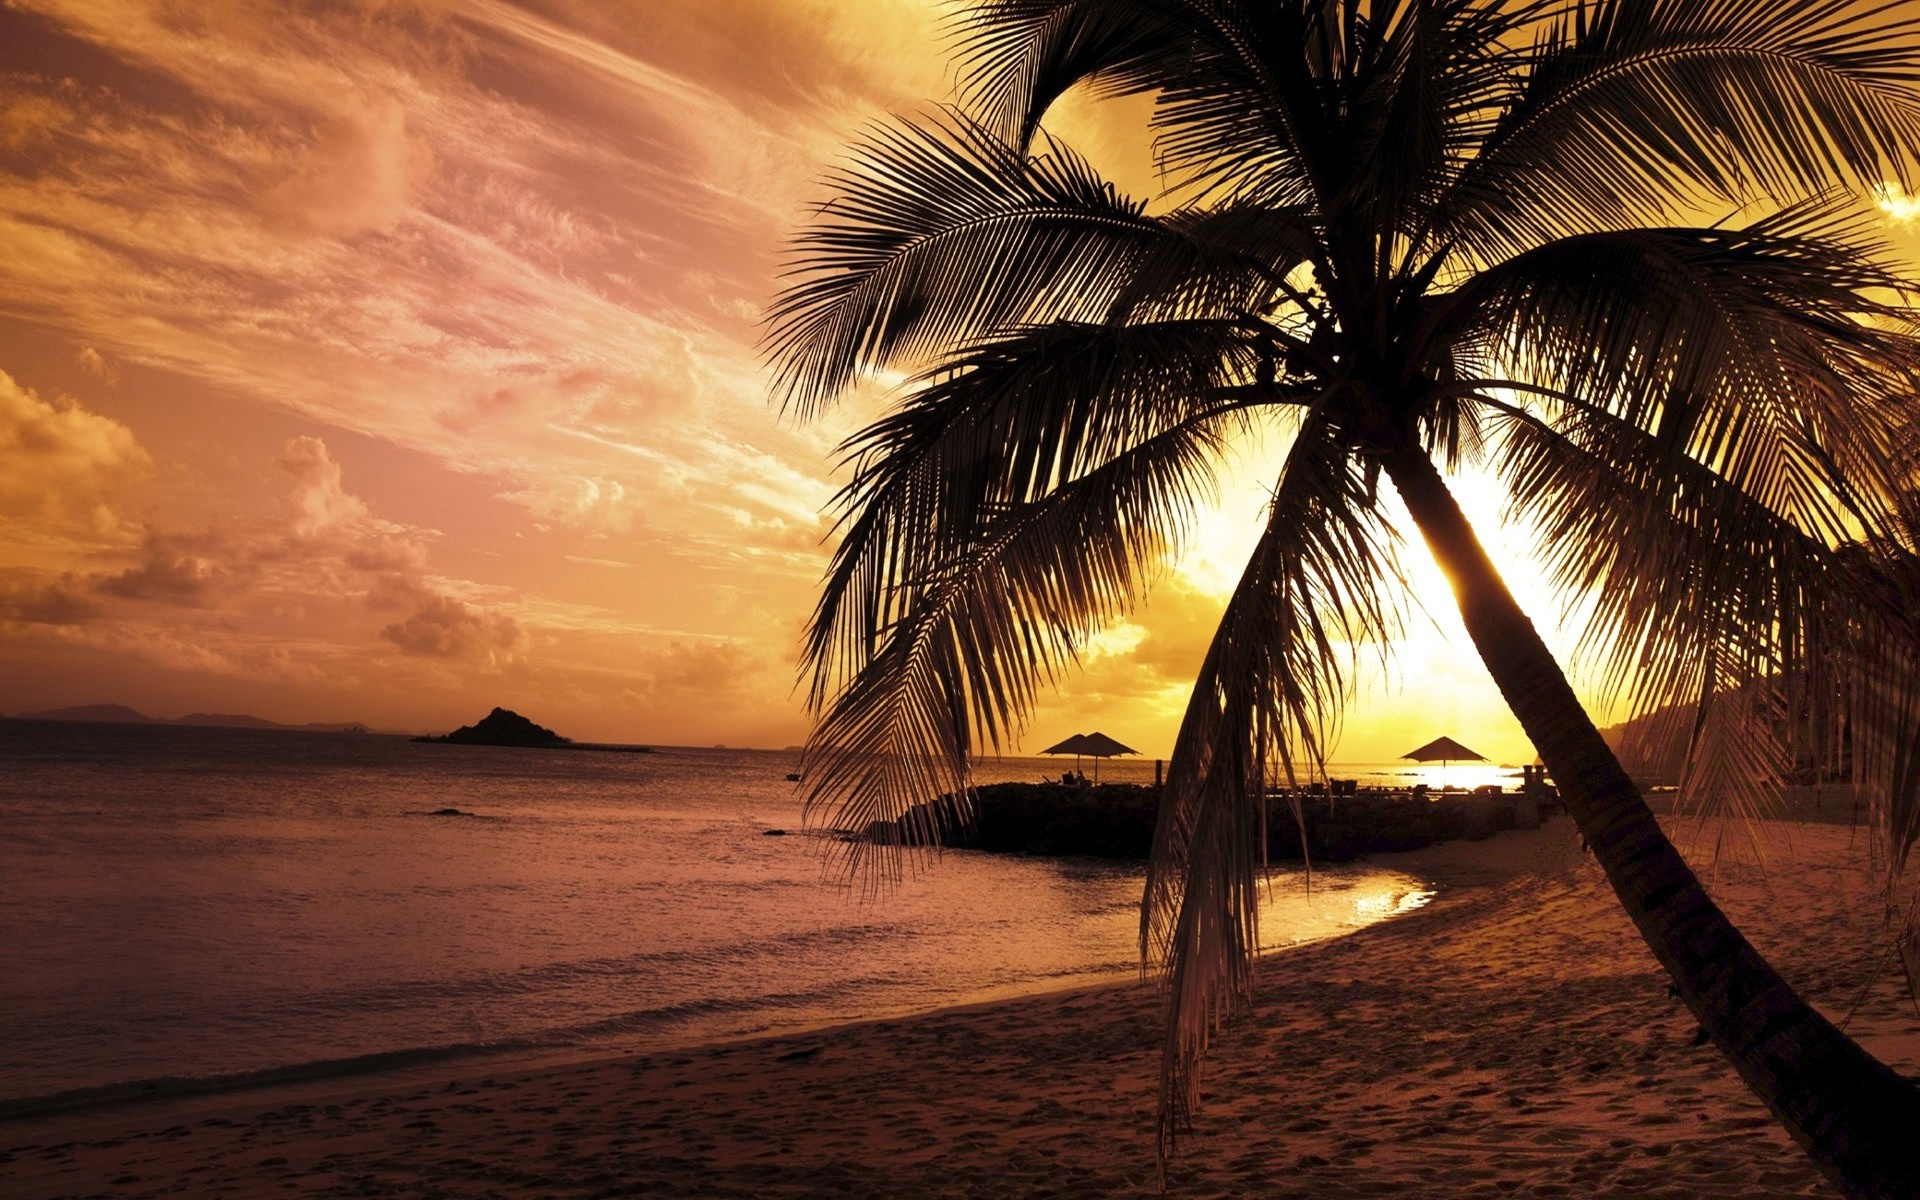 palm trees sunset hd wallpapers palm trees sunset hd wallpapers 1920x1200